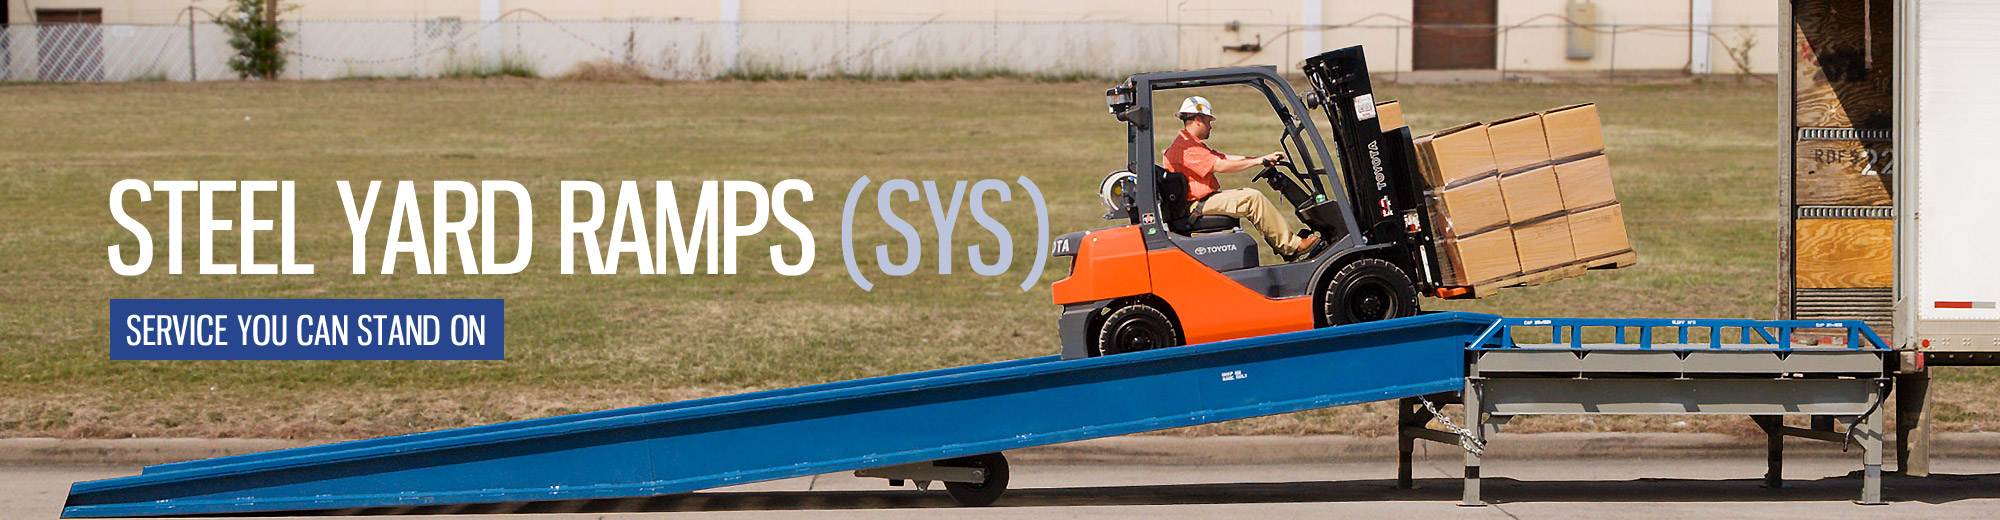 Loading Ramps | Yard Truck Ramps | Portable Docks - Ramps made in the USA with Delivery available overnight!